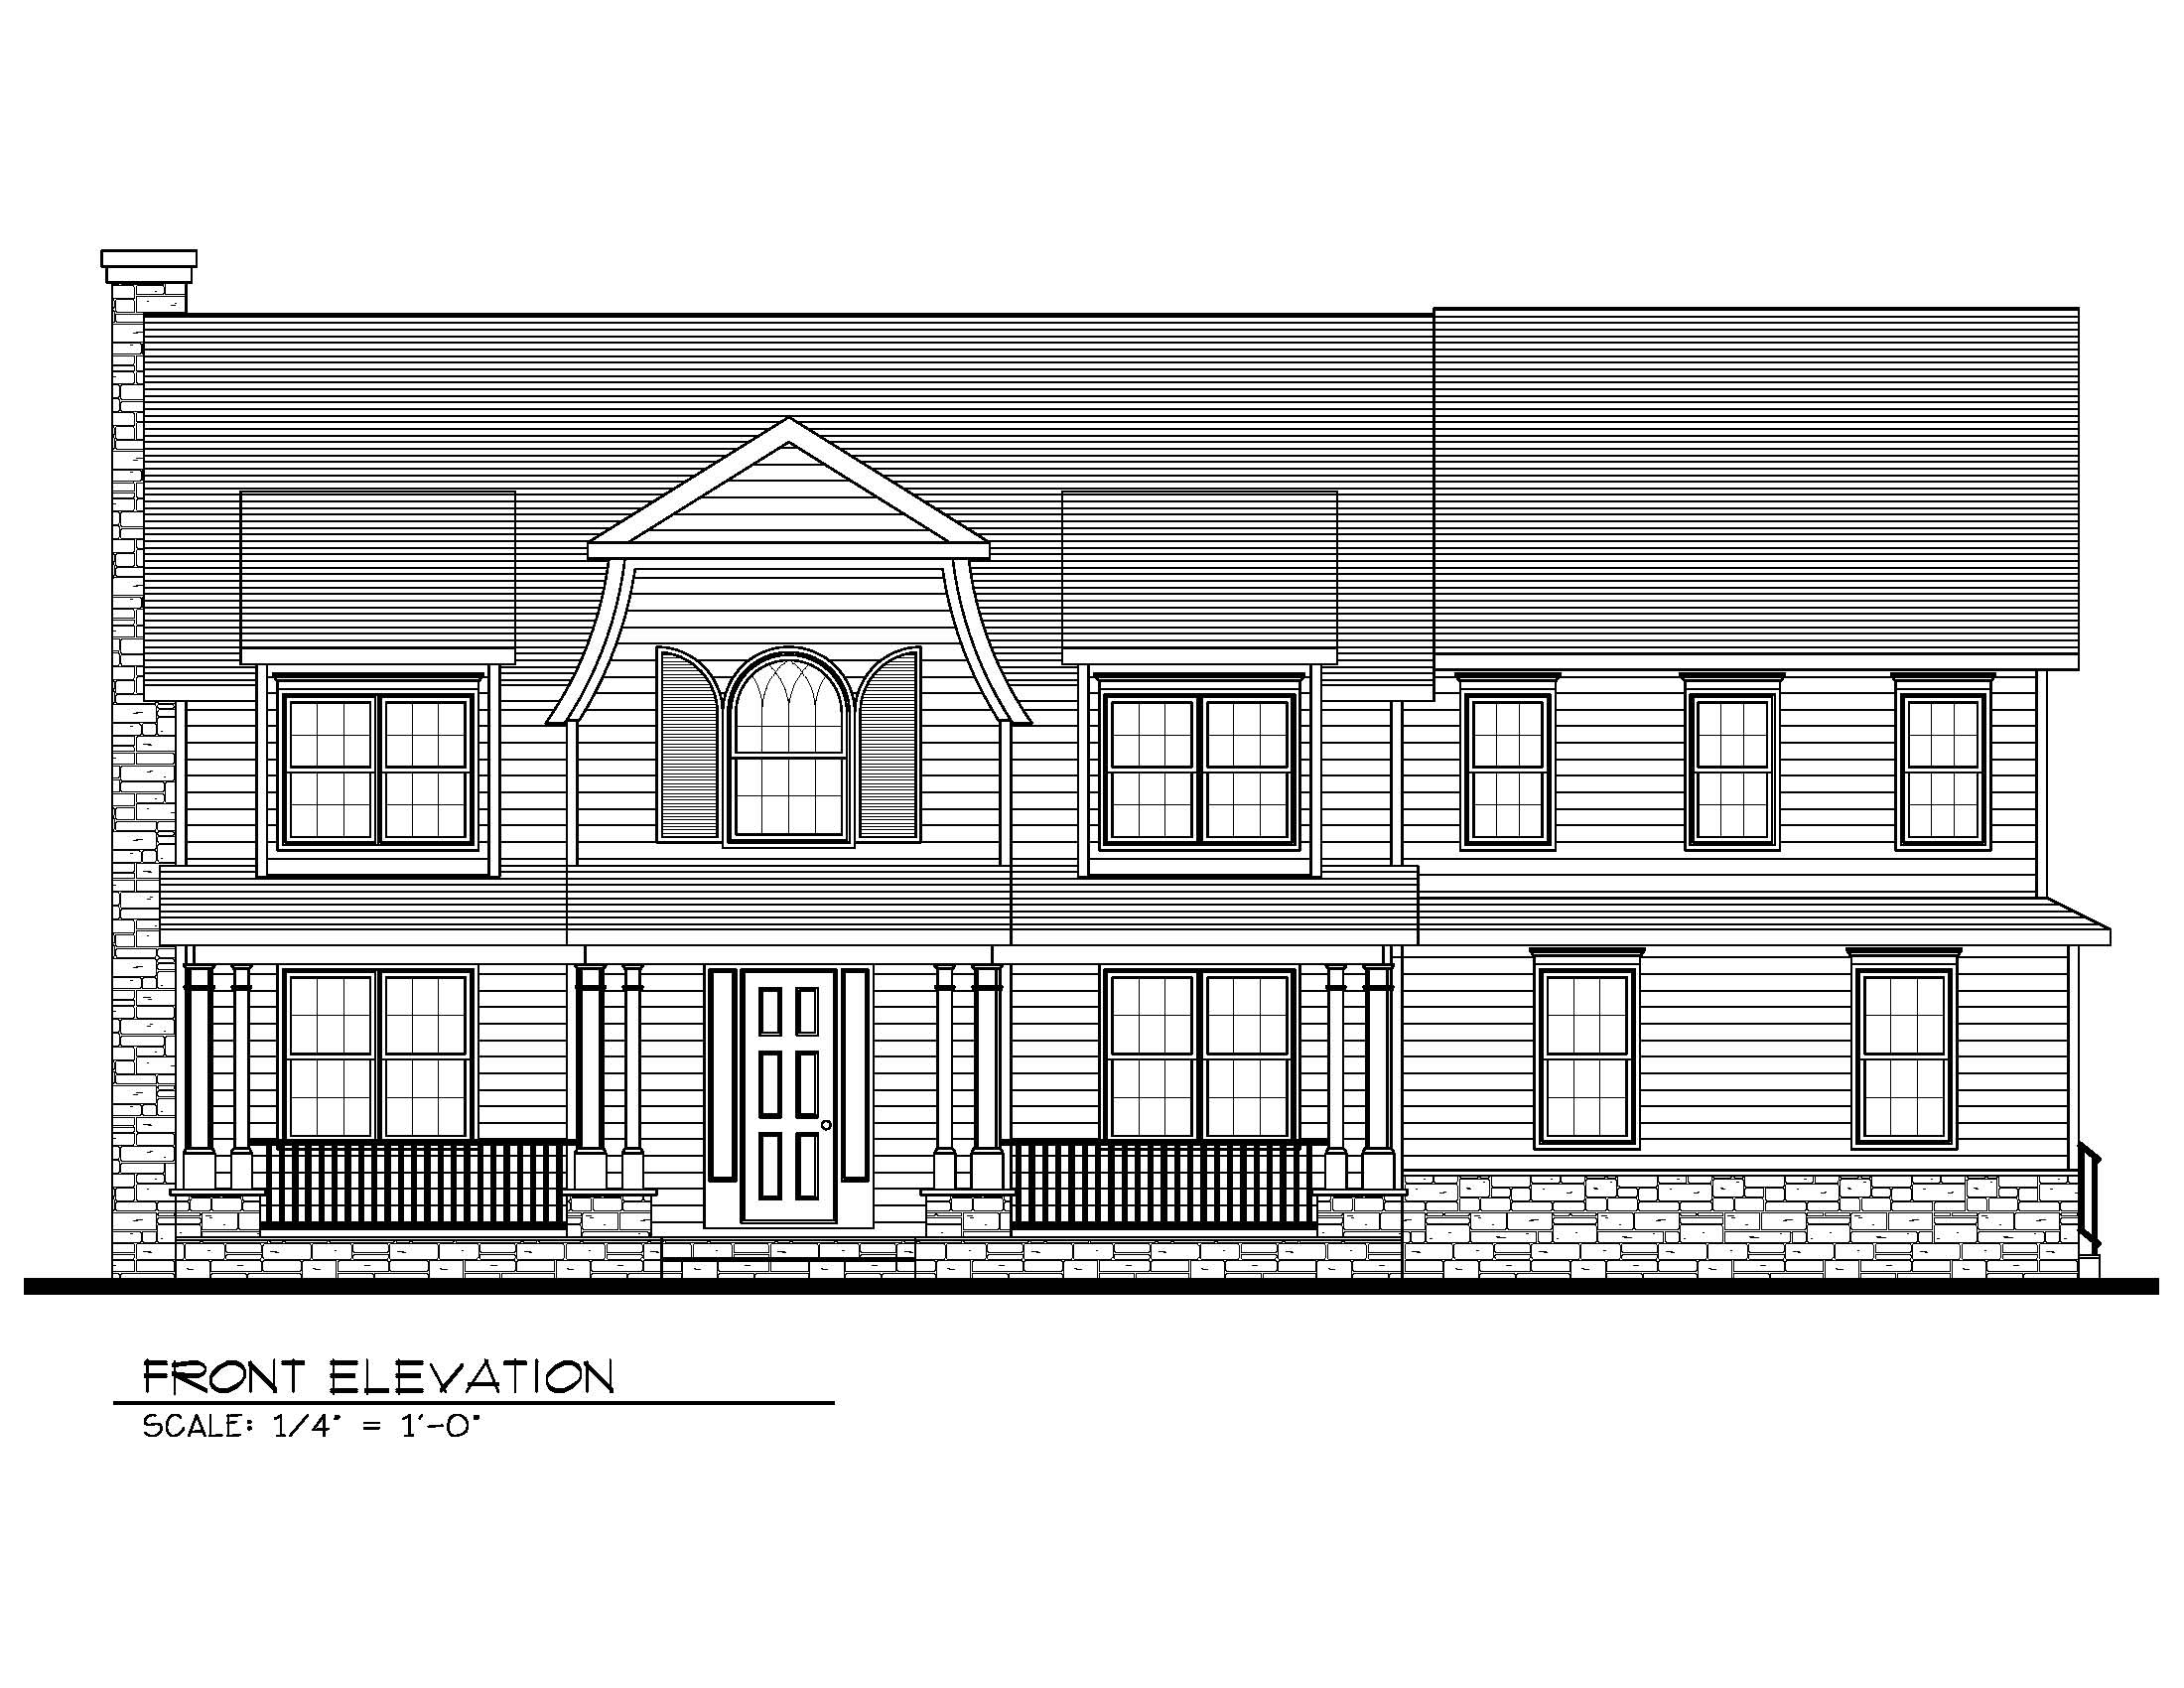 407 Quantuck Front Elevation B&W